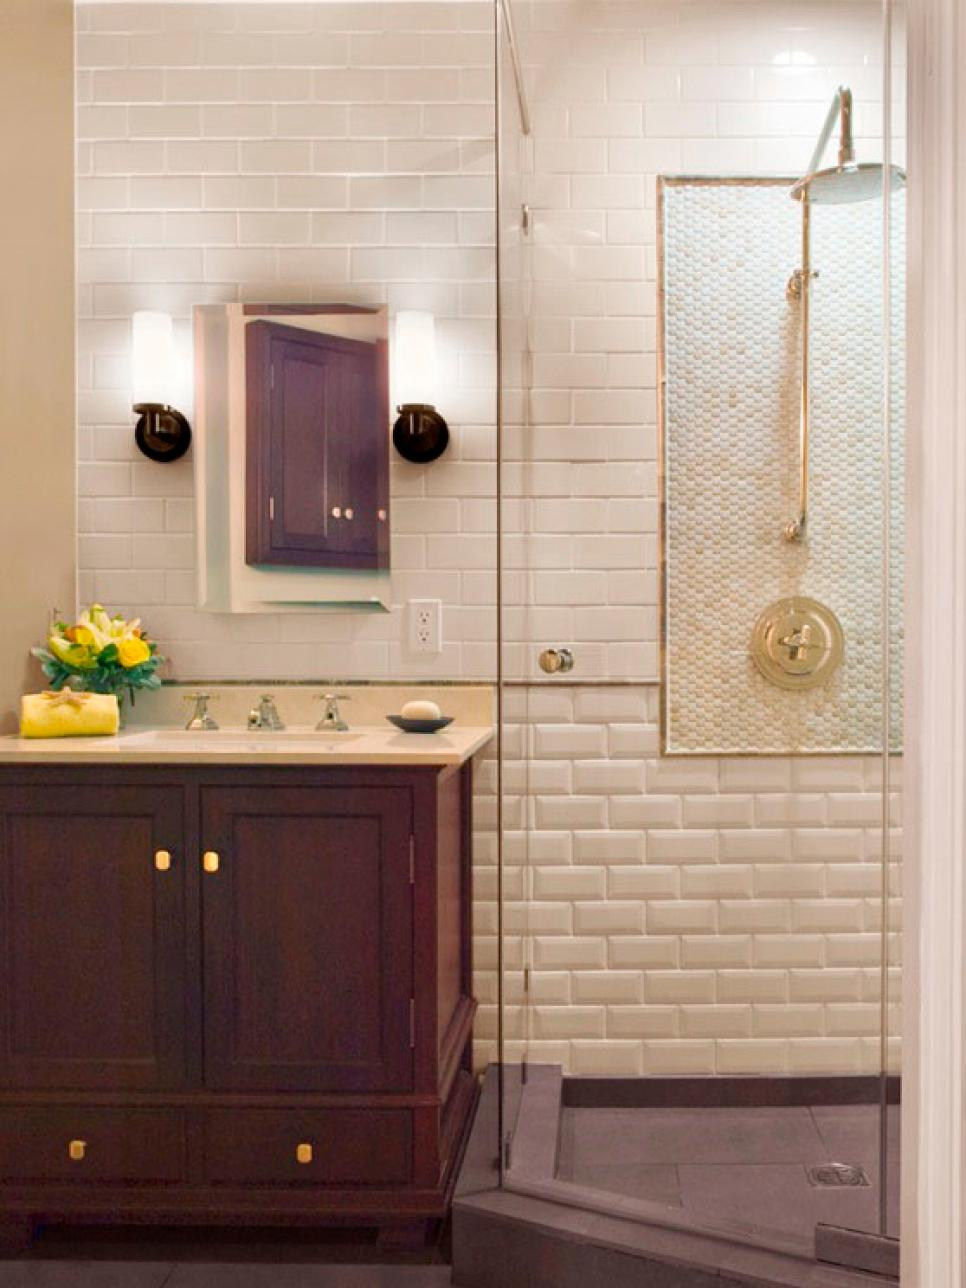 bathroom shower designs hgtv. Interior Design Ideas. Home Design Ideas